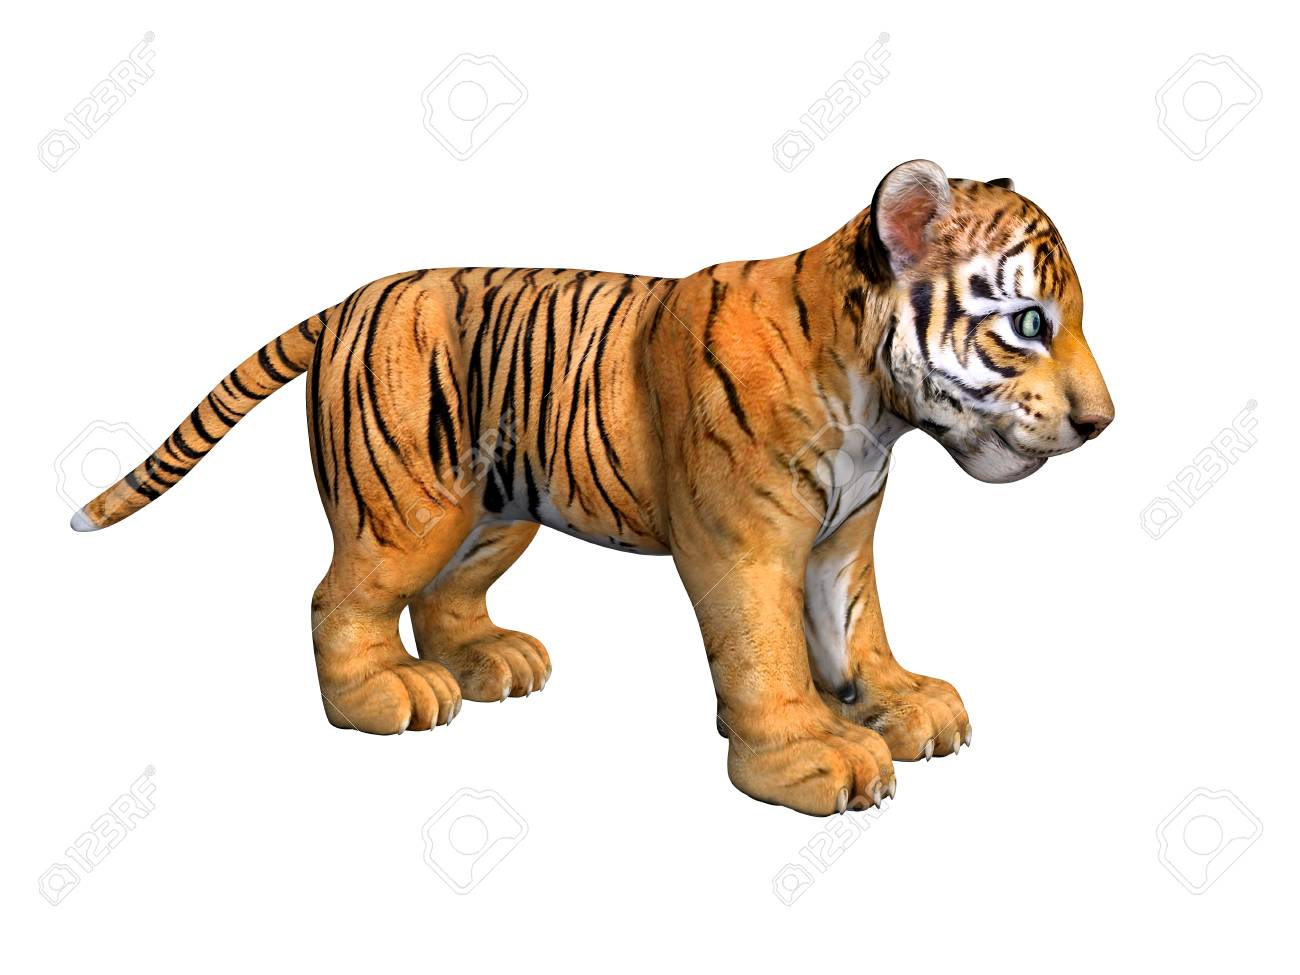 Cute tiger cub 3d image isolated on white background stock photo cute tiger cub 3d image isolated on white background stock photo 72512812 thecheapjerseys Image collections